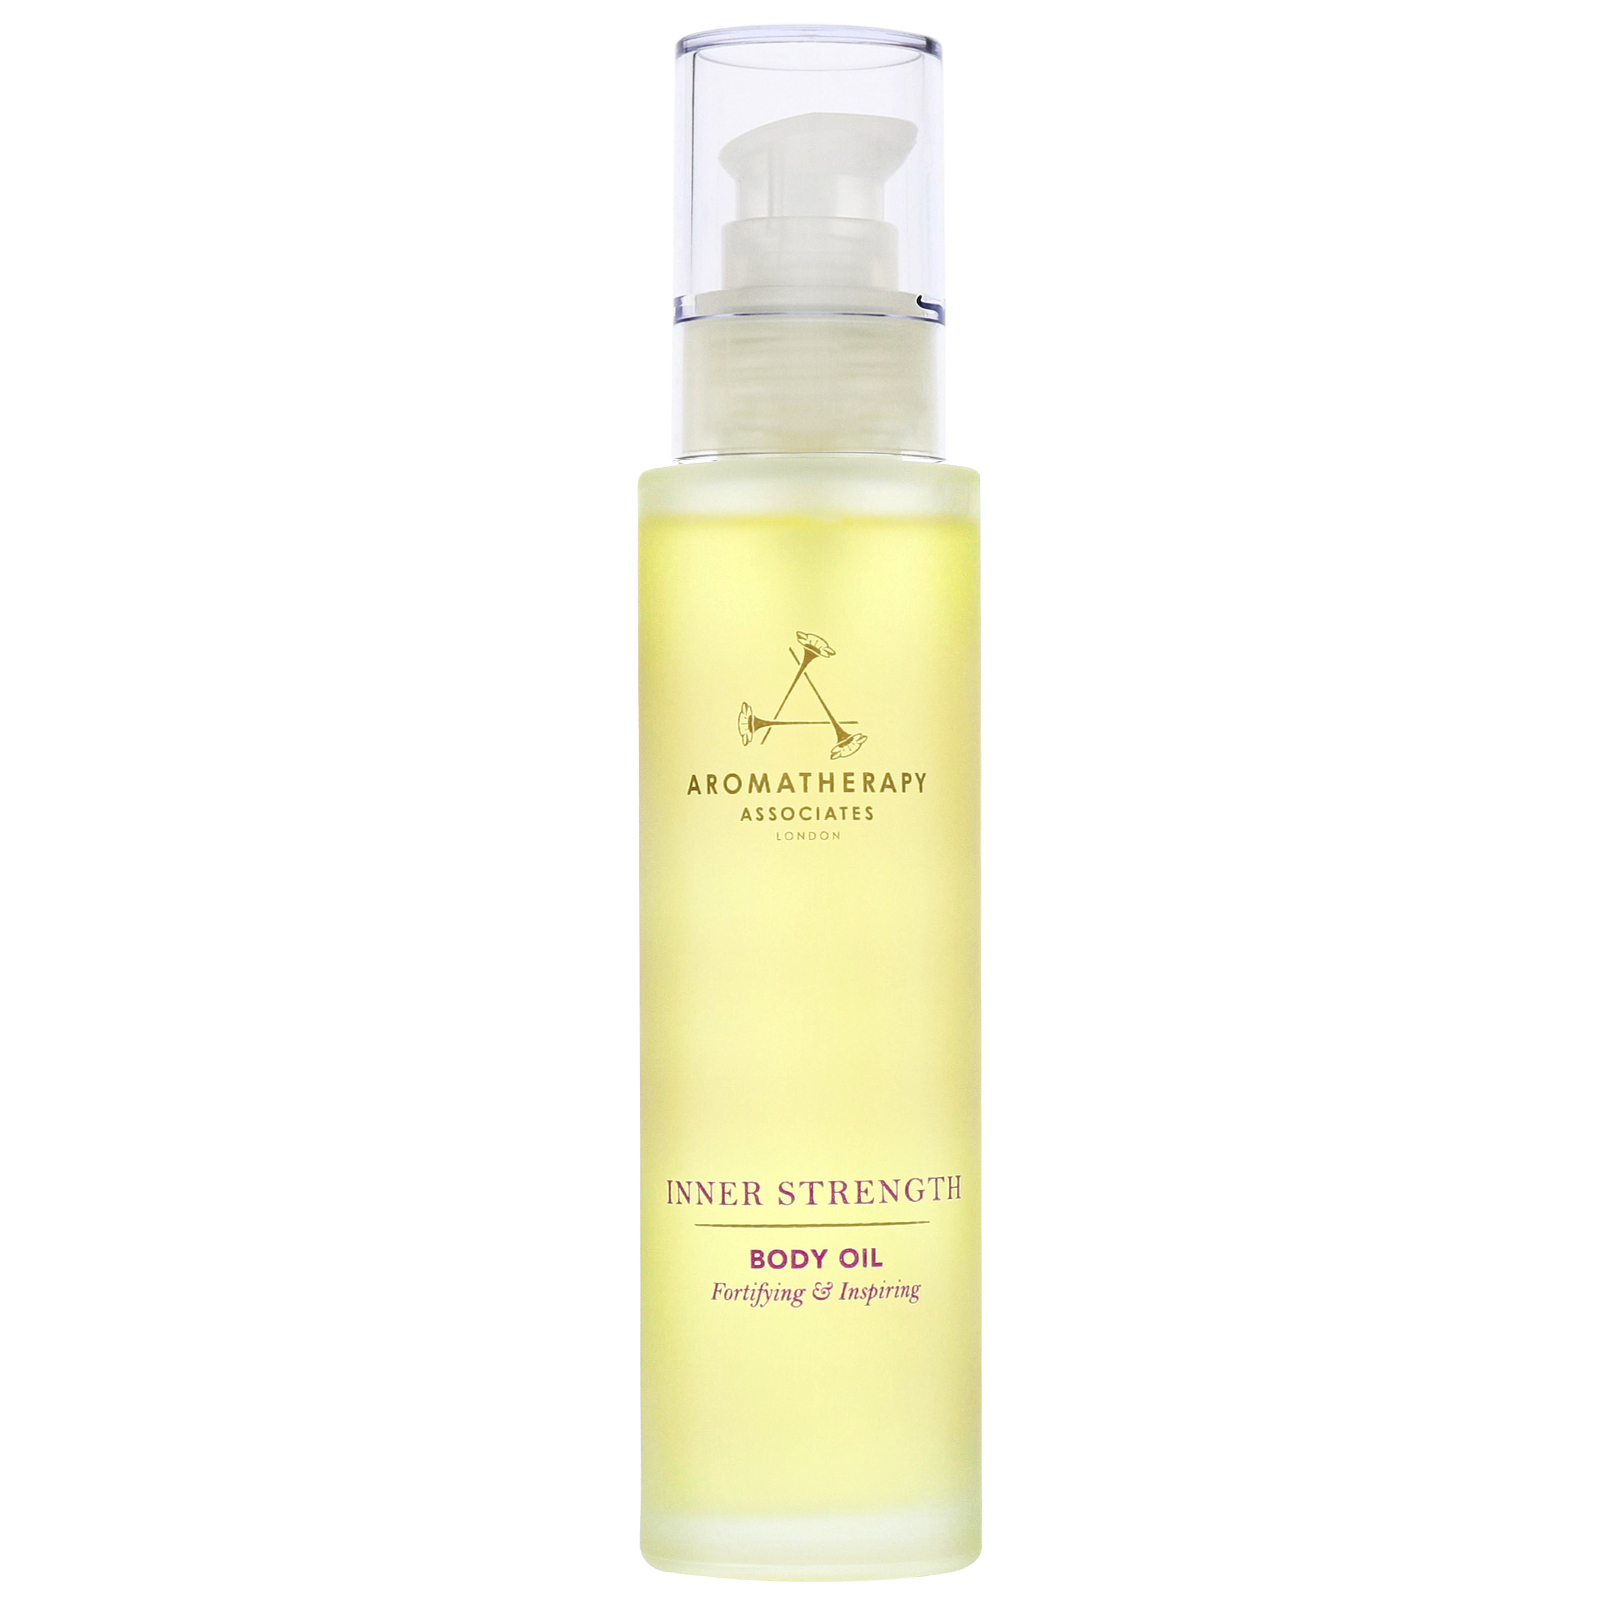 Aromatherapy Associates Inner Strength Body Oil 100ml